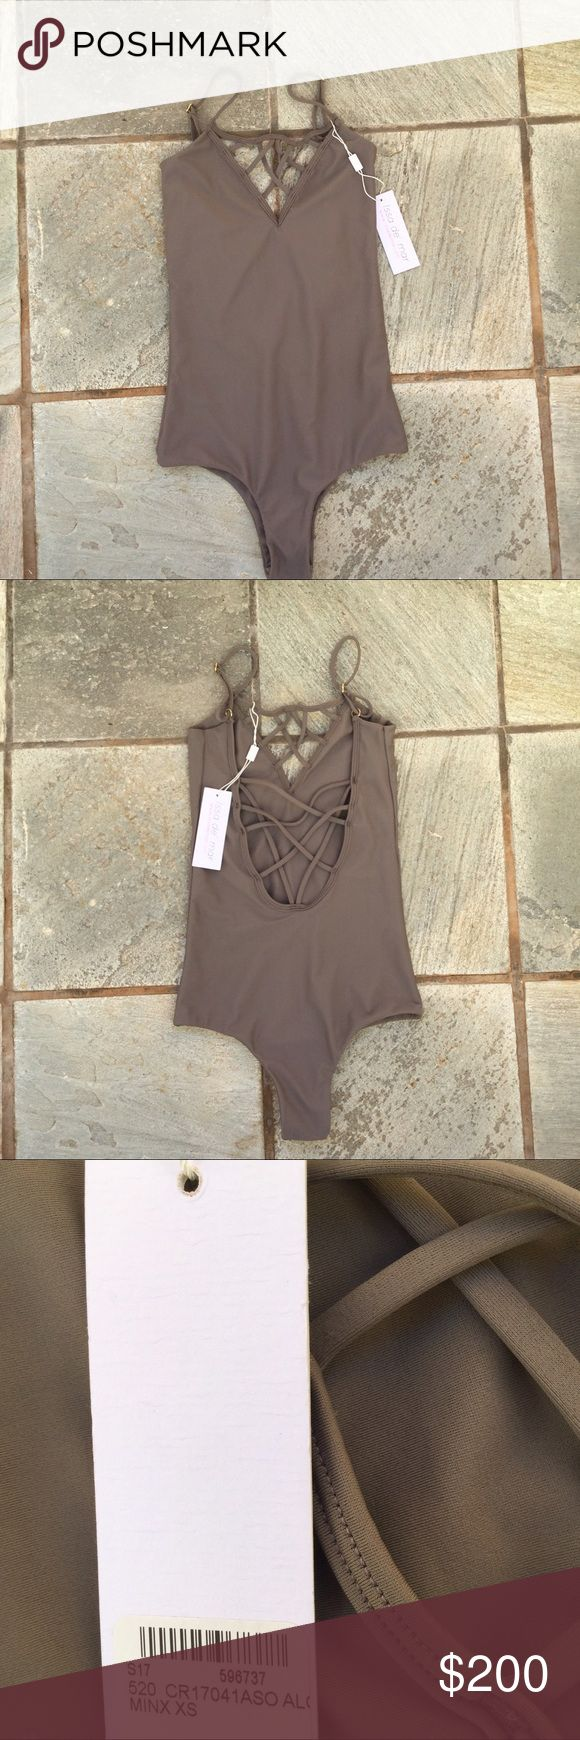 ($155 🅿️🅿️) Issa de' Mar Sao Paulo One Piece NWT never worn issa de mar sao paulo one piece. never worn, perfect condition. cheeky cut, super trendy flattering suit, great fit. charcoal gray ish color, very pretty goes great w all skin tones. love love this suit but i have to sell. last picture is just to show the fit, not same color. open to trades and offers! (selling cheaper other places)  brand: issa de mar size: xs, could definitely fit a s color/print: minx brown acacia swimwear Swim…